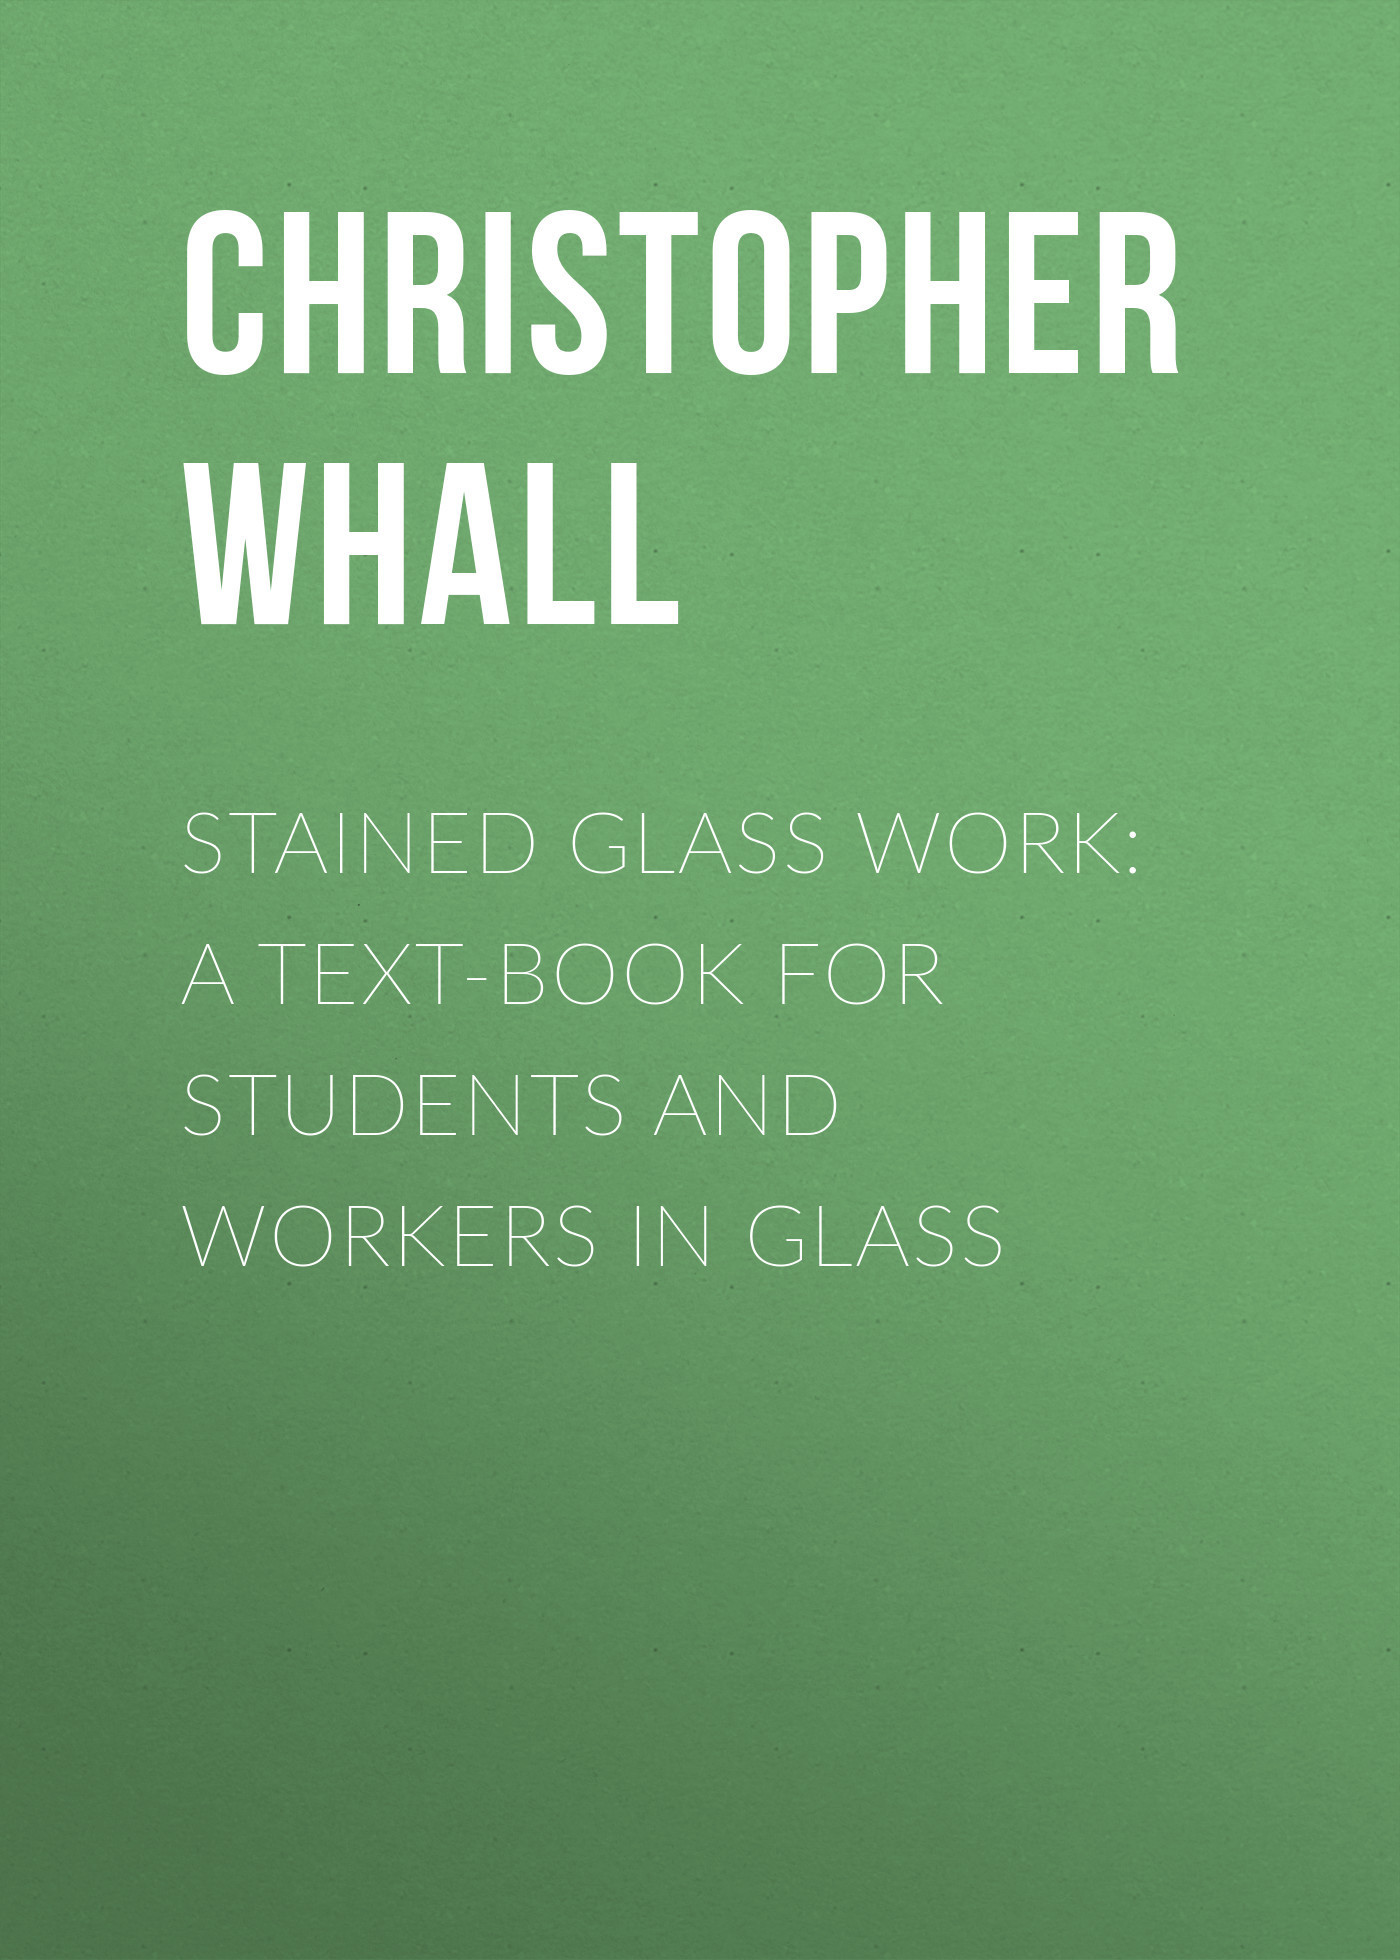 Christopher Whall Stained Glass Work: A text-book for students and workers in glass new 15 6 inch digitizer touch screen panel glass for asus transformer book flip tp500 tp500l tp500la tp500ln free shipping